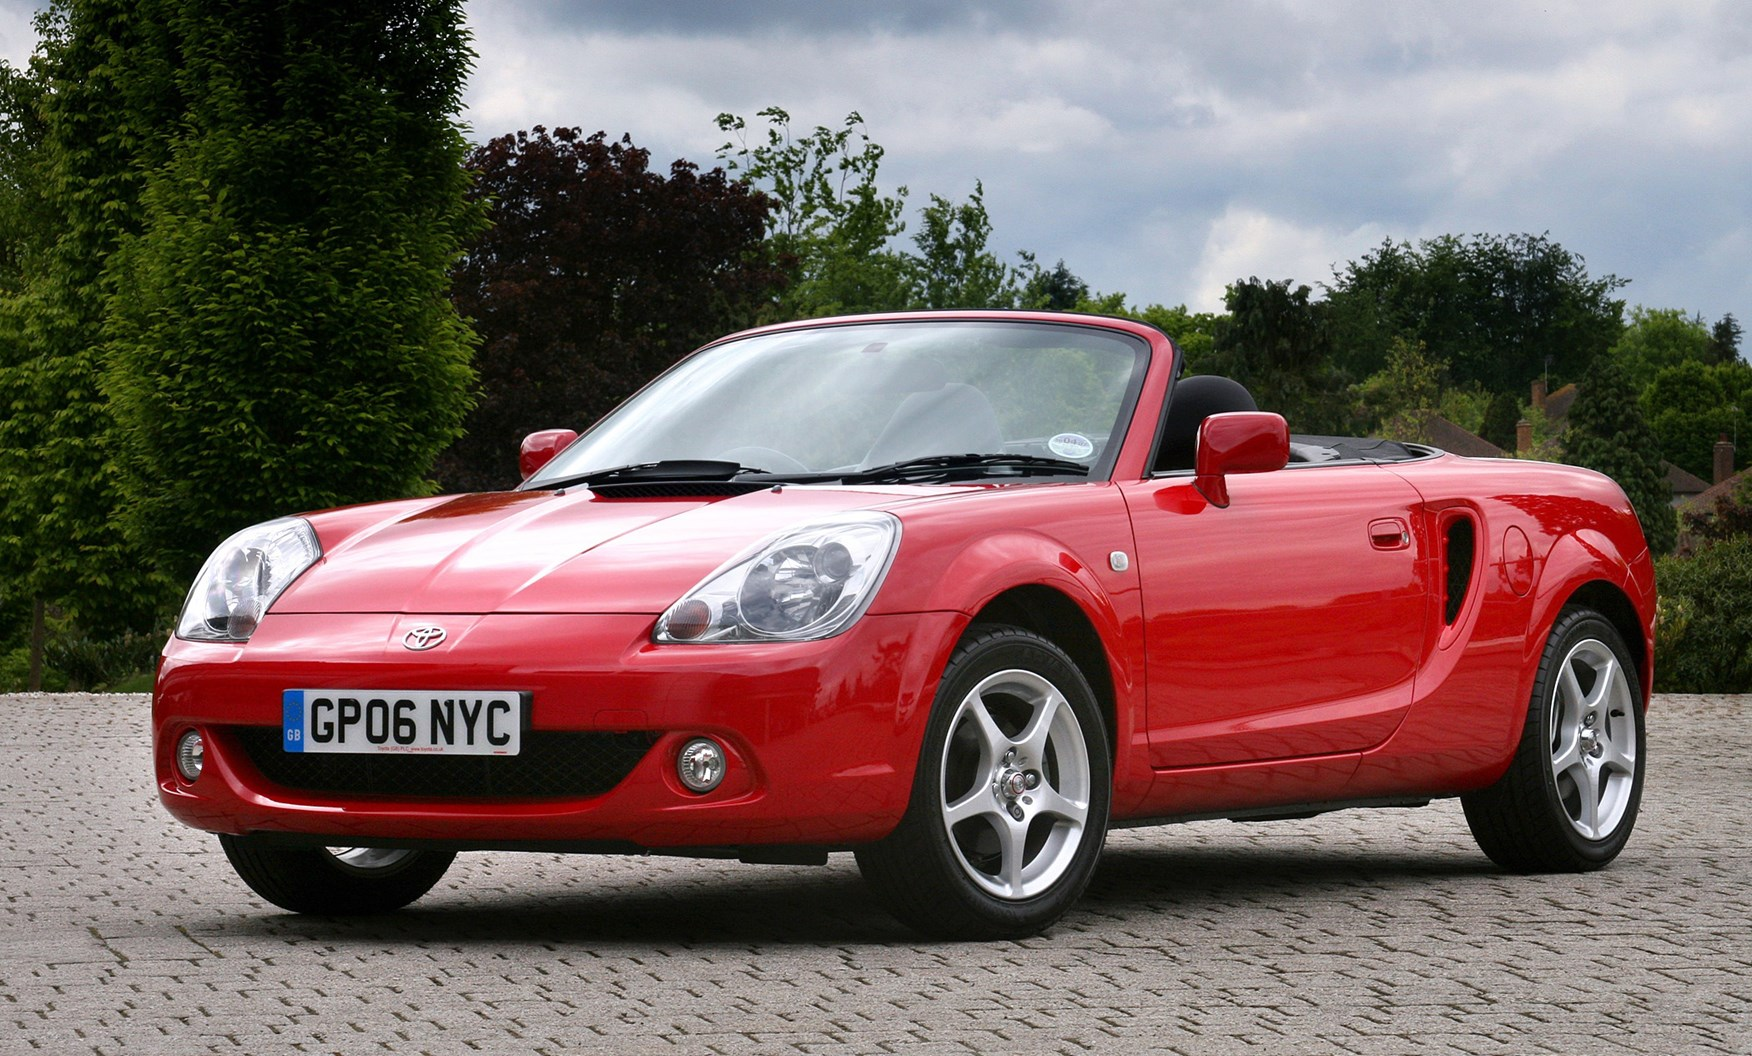 Toyota Mr2 Roadster Review 2000 - 2006  Parkers-2590